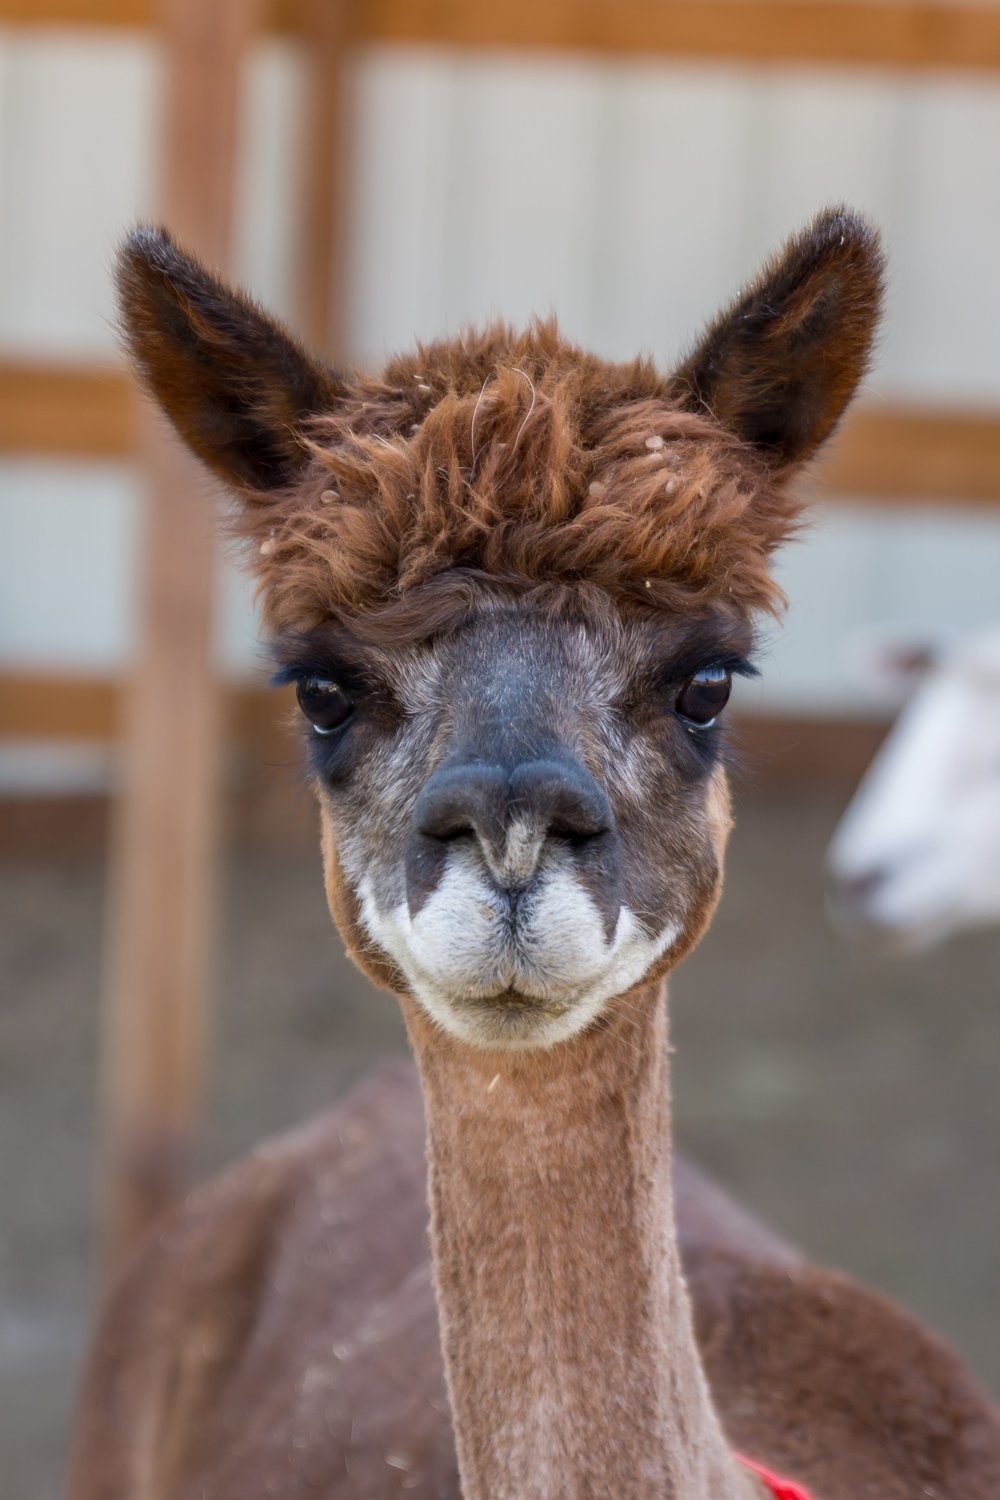 Maggie is a ranch favorite. Her sweet face is adorable and is one of the sweetest on the ranch. Her poof of fiber on her head gives her a unique look that we love. A wonderful mother and fiber producer we couldn't have asked for a better alpaca!